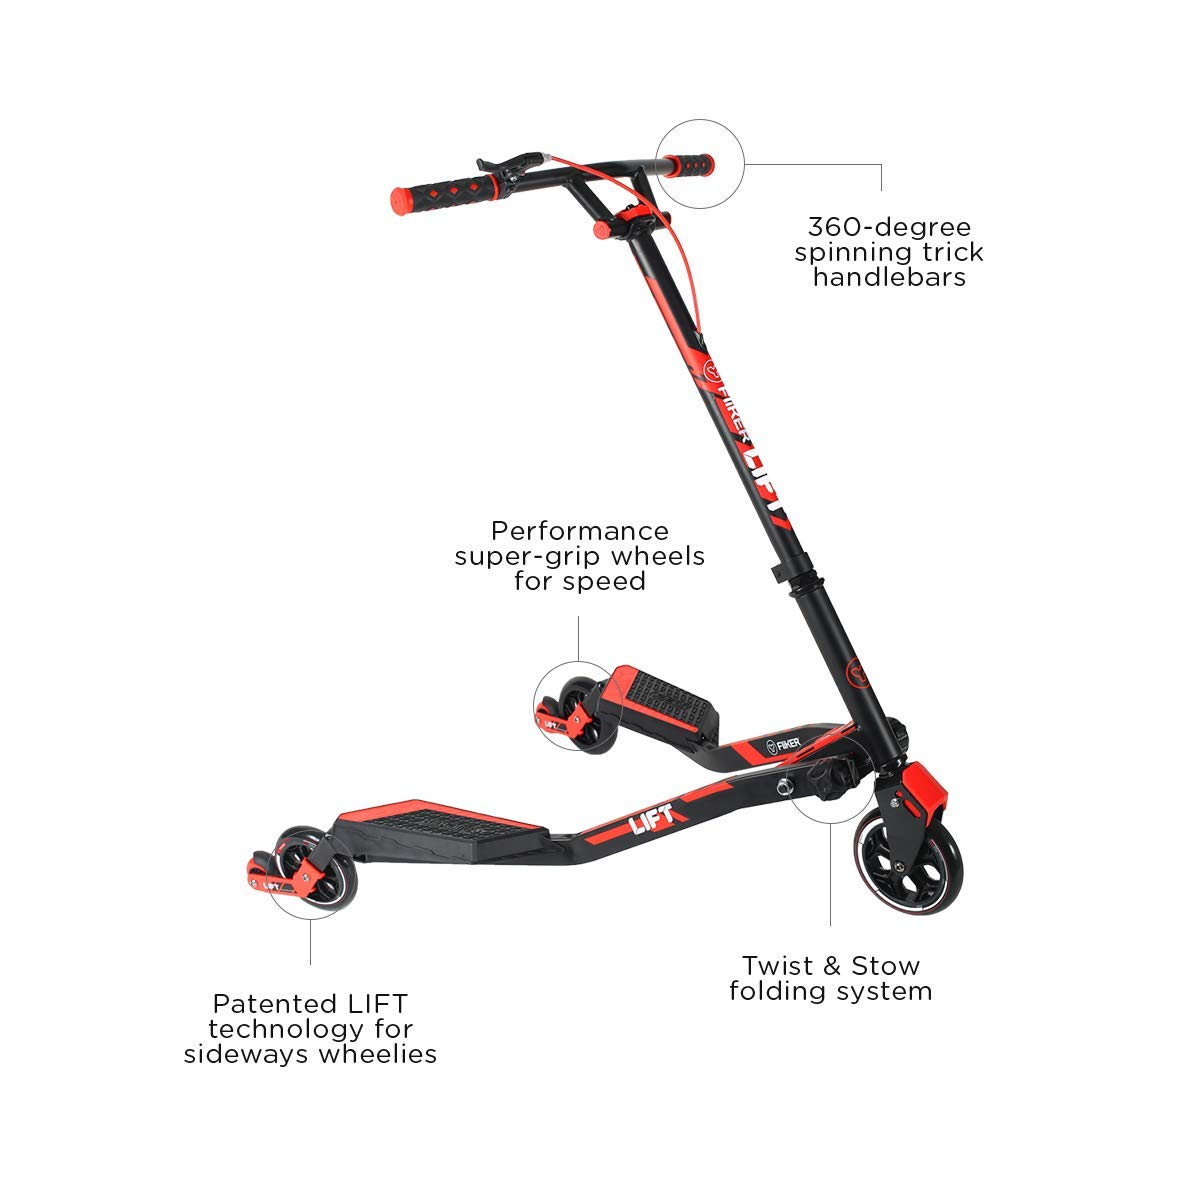 Yvolution Y Fliker Lift Kids Scooter | Swing Wiggle Scooter | Carving Scooter for Kids Ages 7 and Over